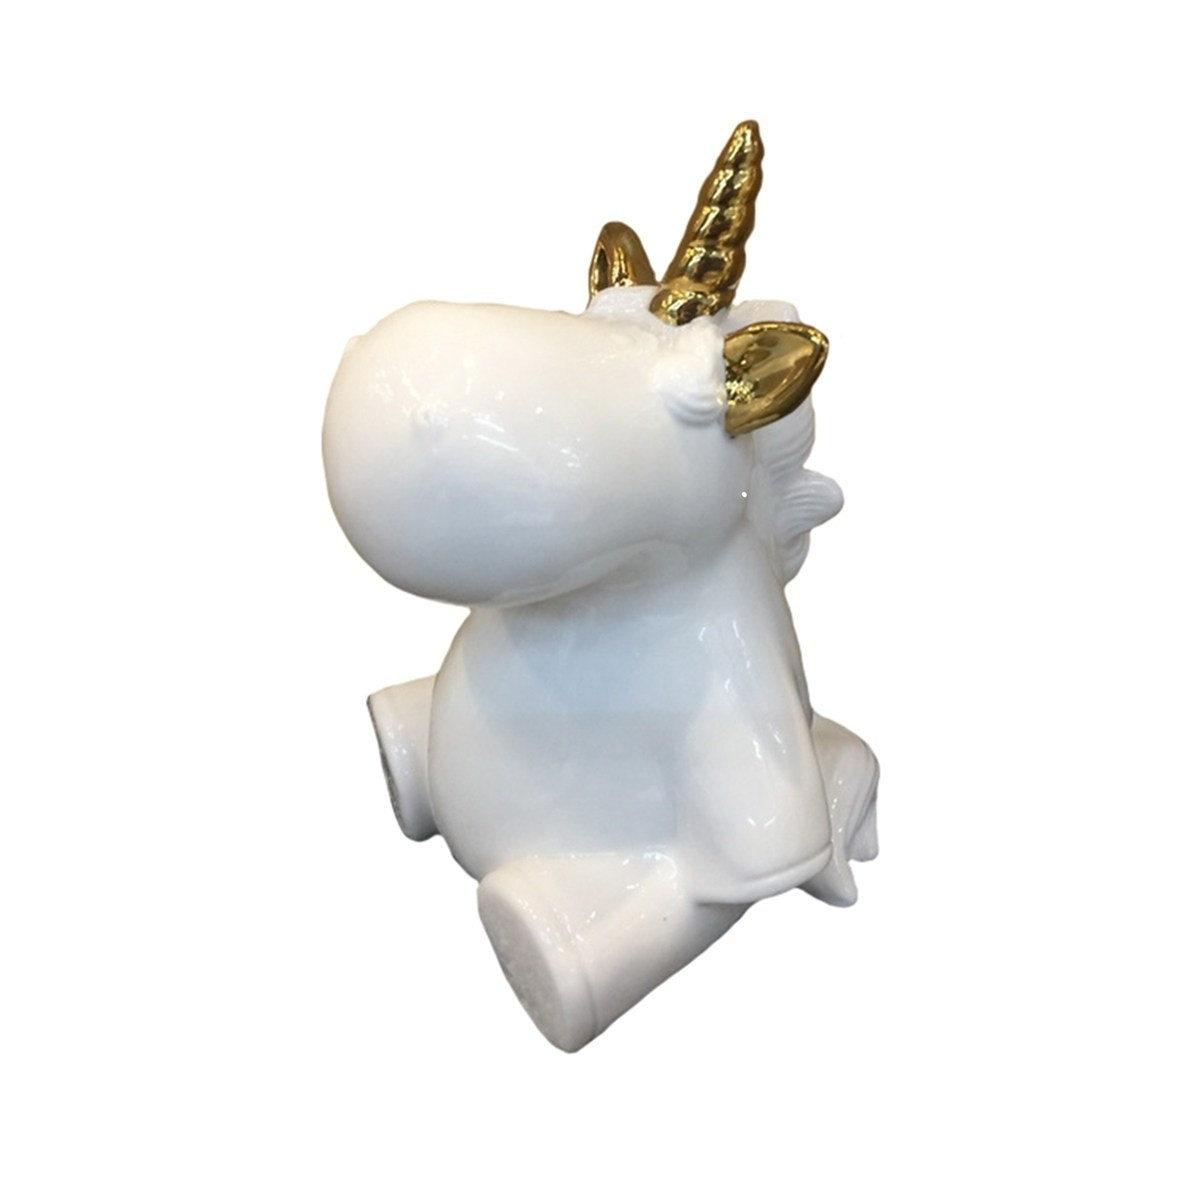 sagebrook home decorative ceramic unicorn figurine gold white inches accent table free shipping orders over brass legs for coffee outdoor side resin half moon sofa small computer